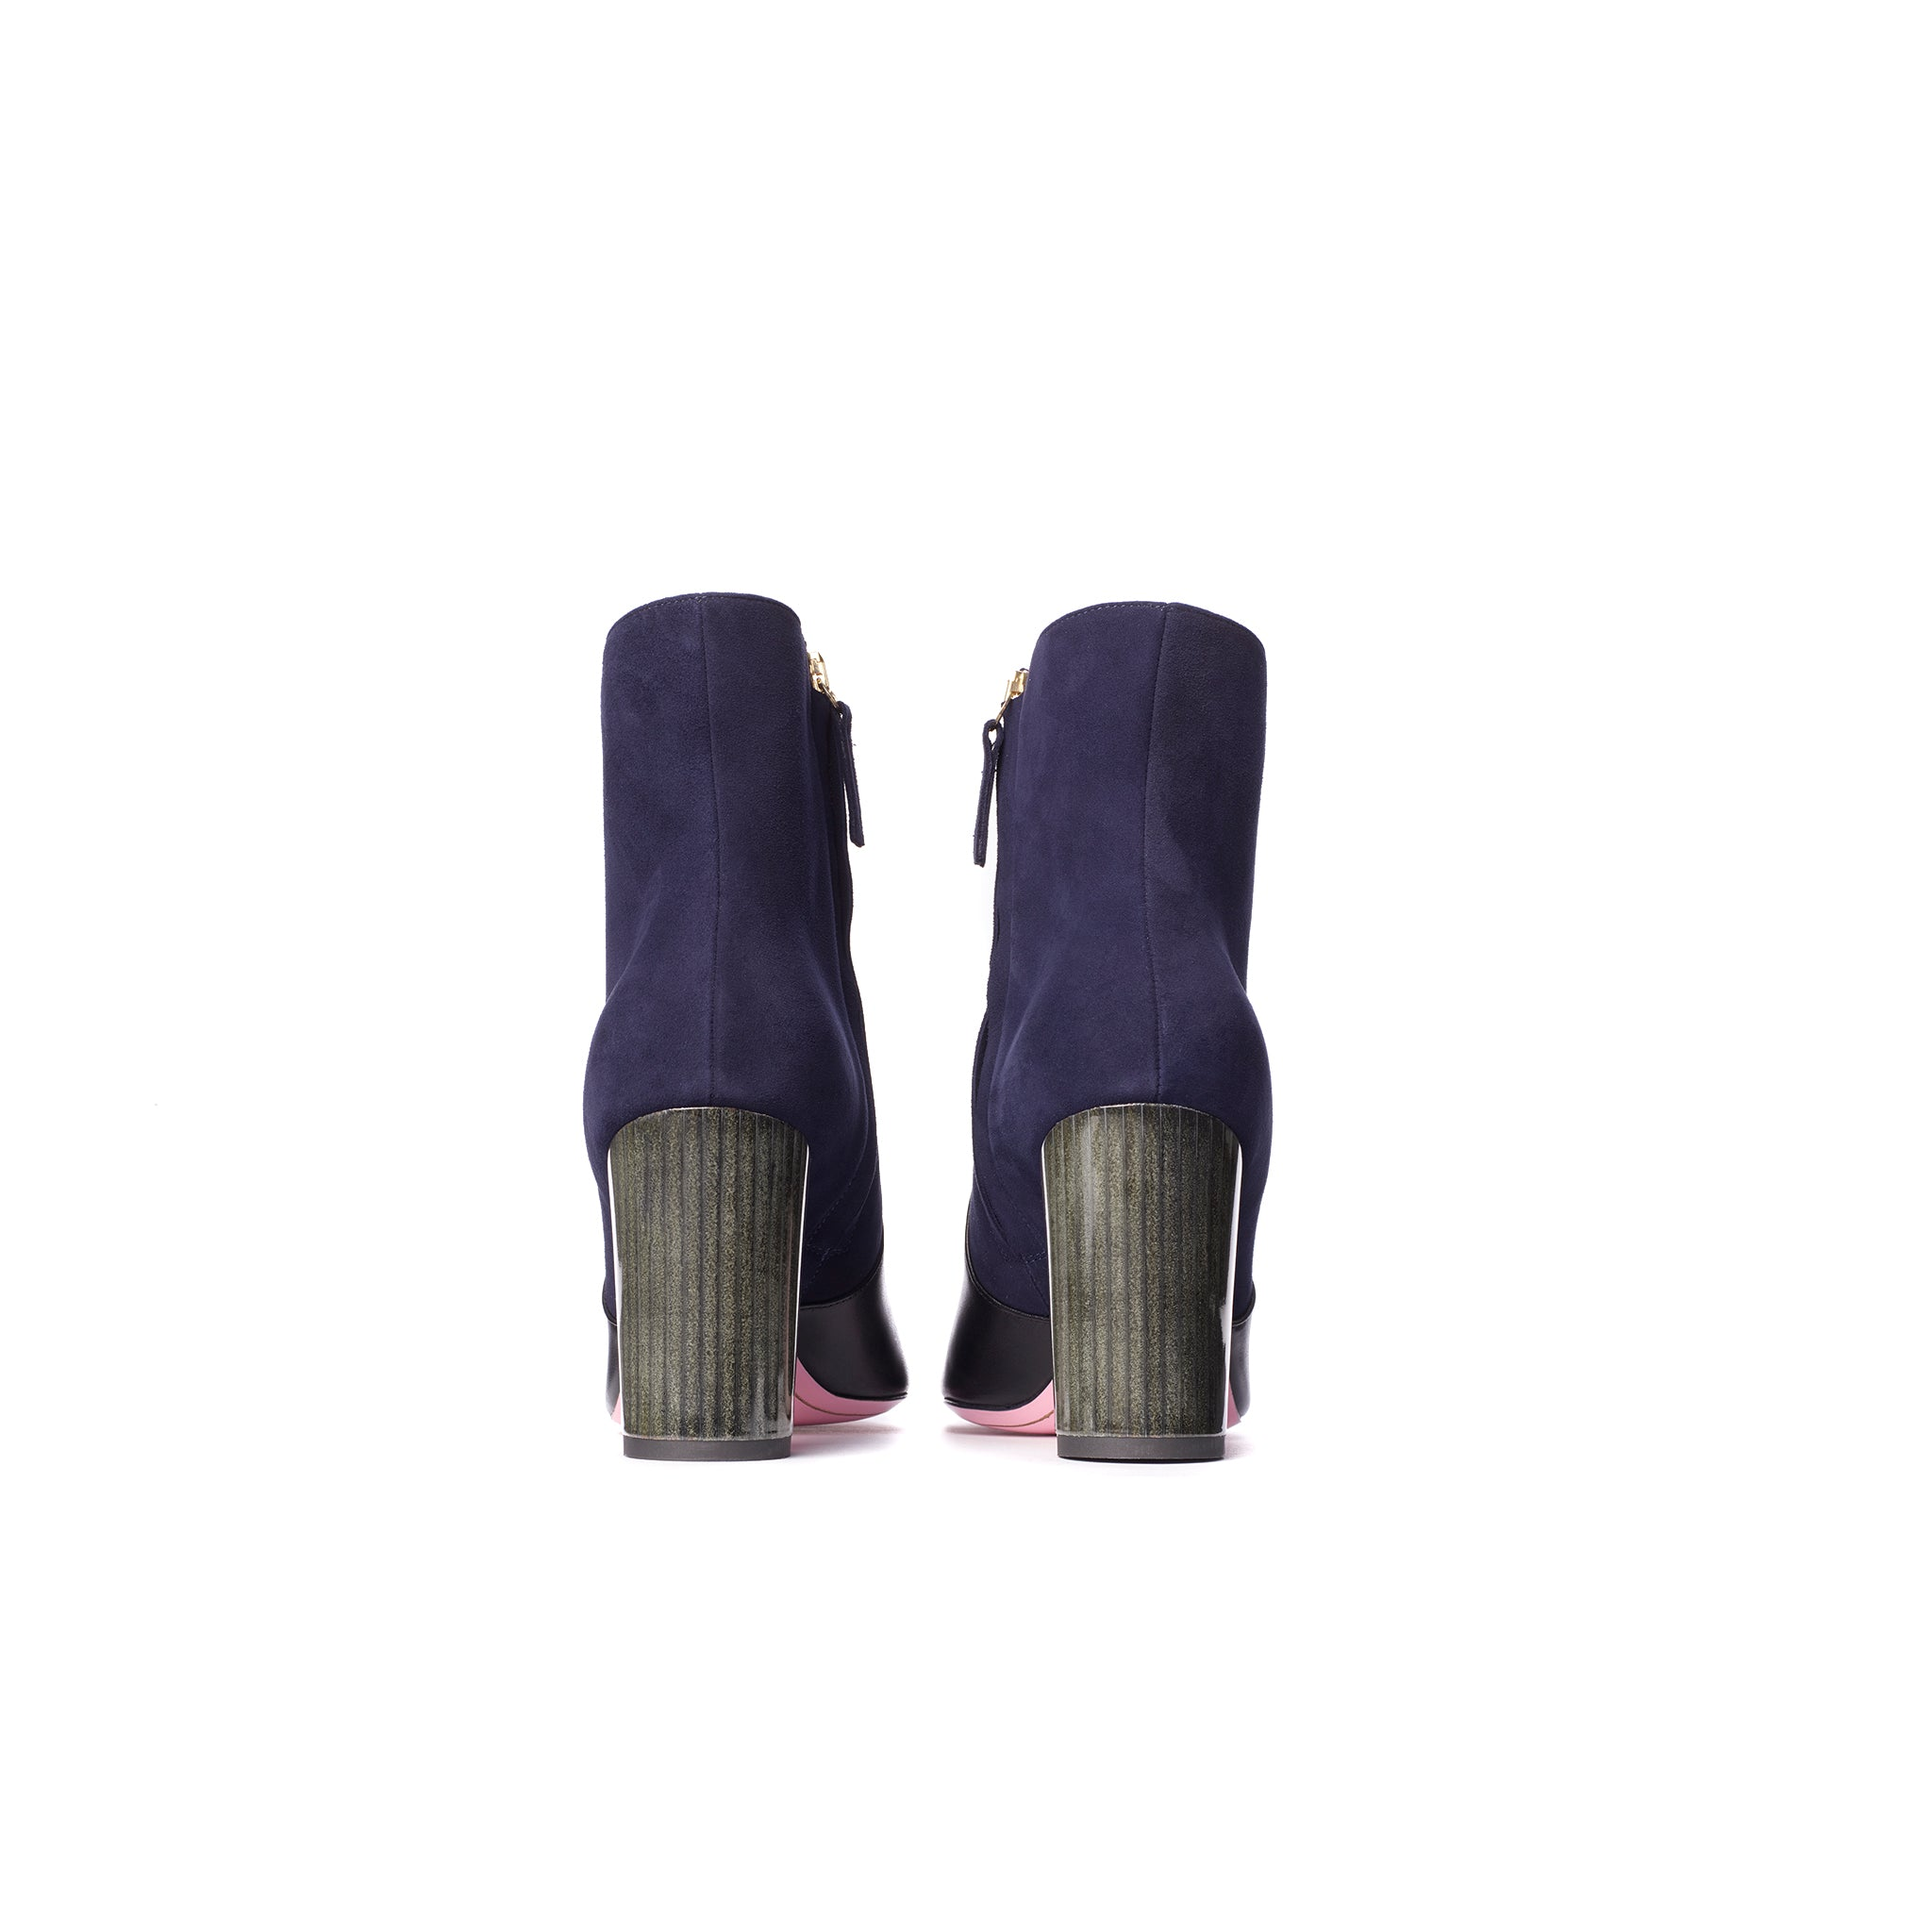 Phare Pointed block heel boot in navy suede and black leather back view